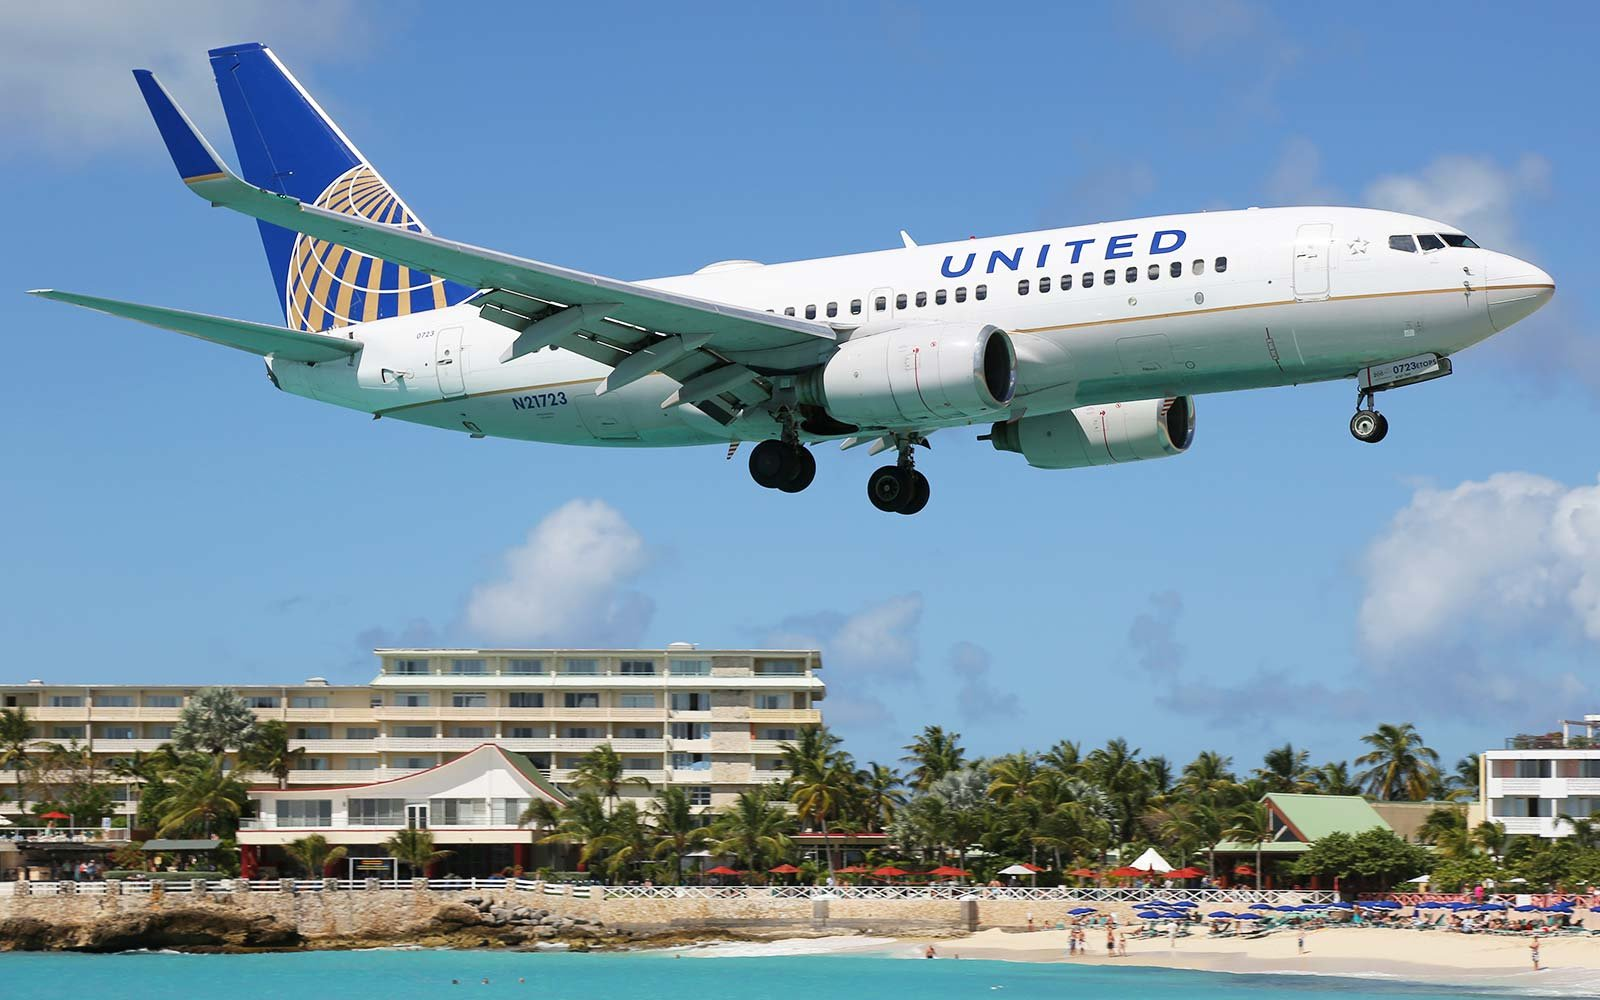 United Airlines Boeing